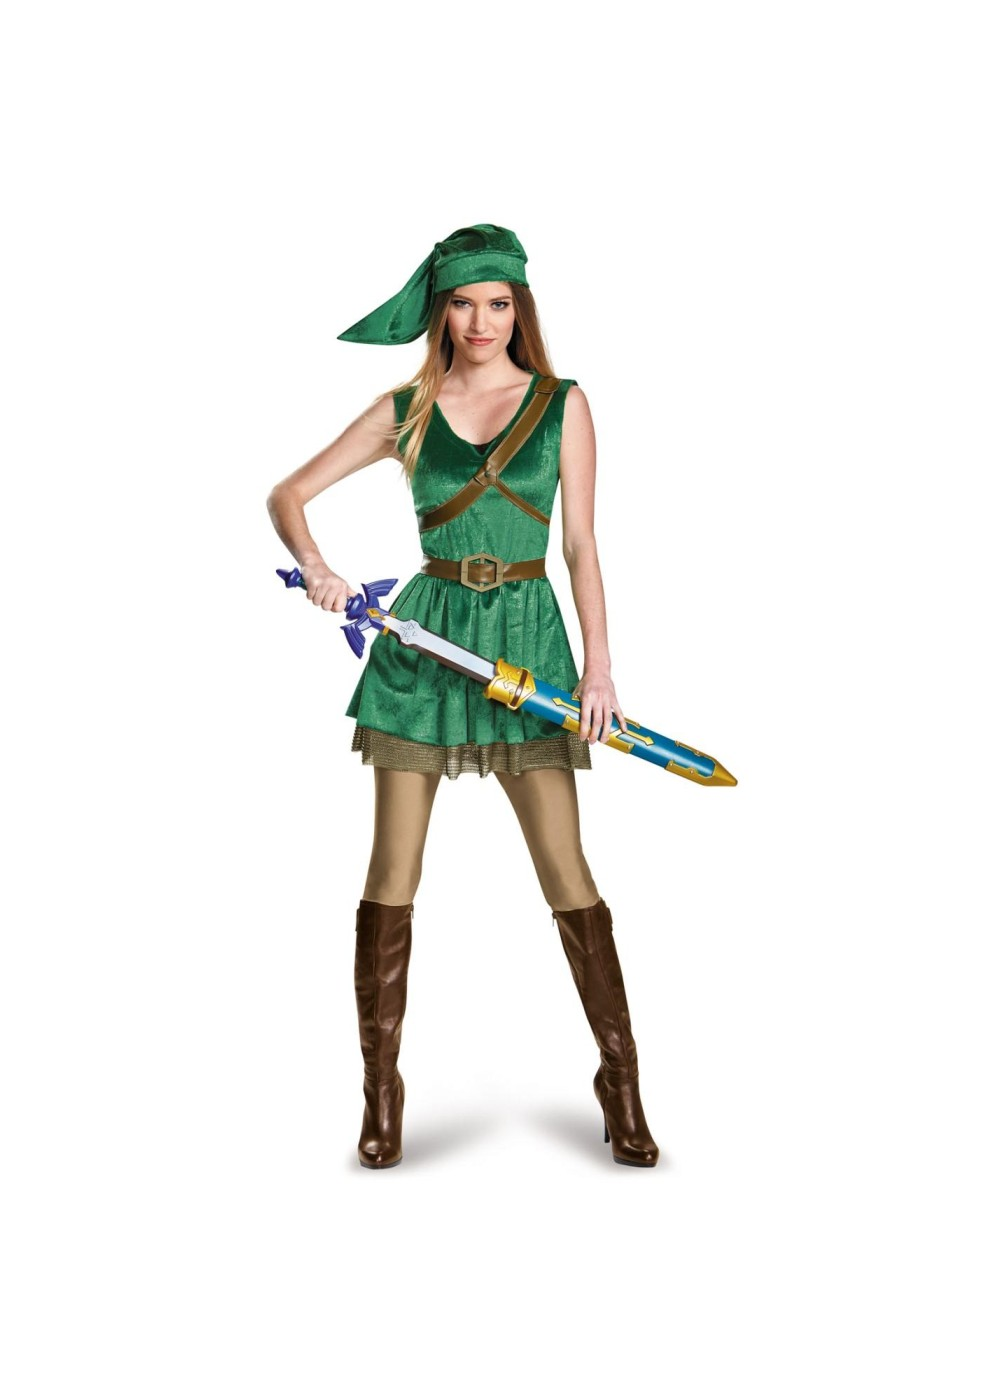 Legend Of Zelda Link Girls Teen Costume  sc 1 st  Halloween Costumes & Legend of Zelda Link Girls Teen Costume - Video Game Costumes